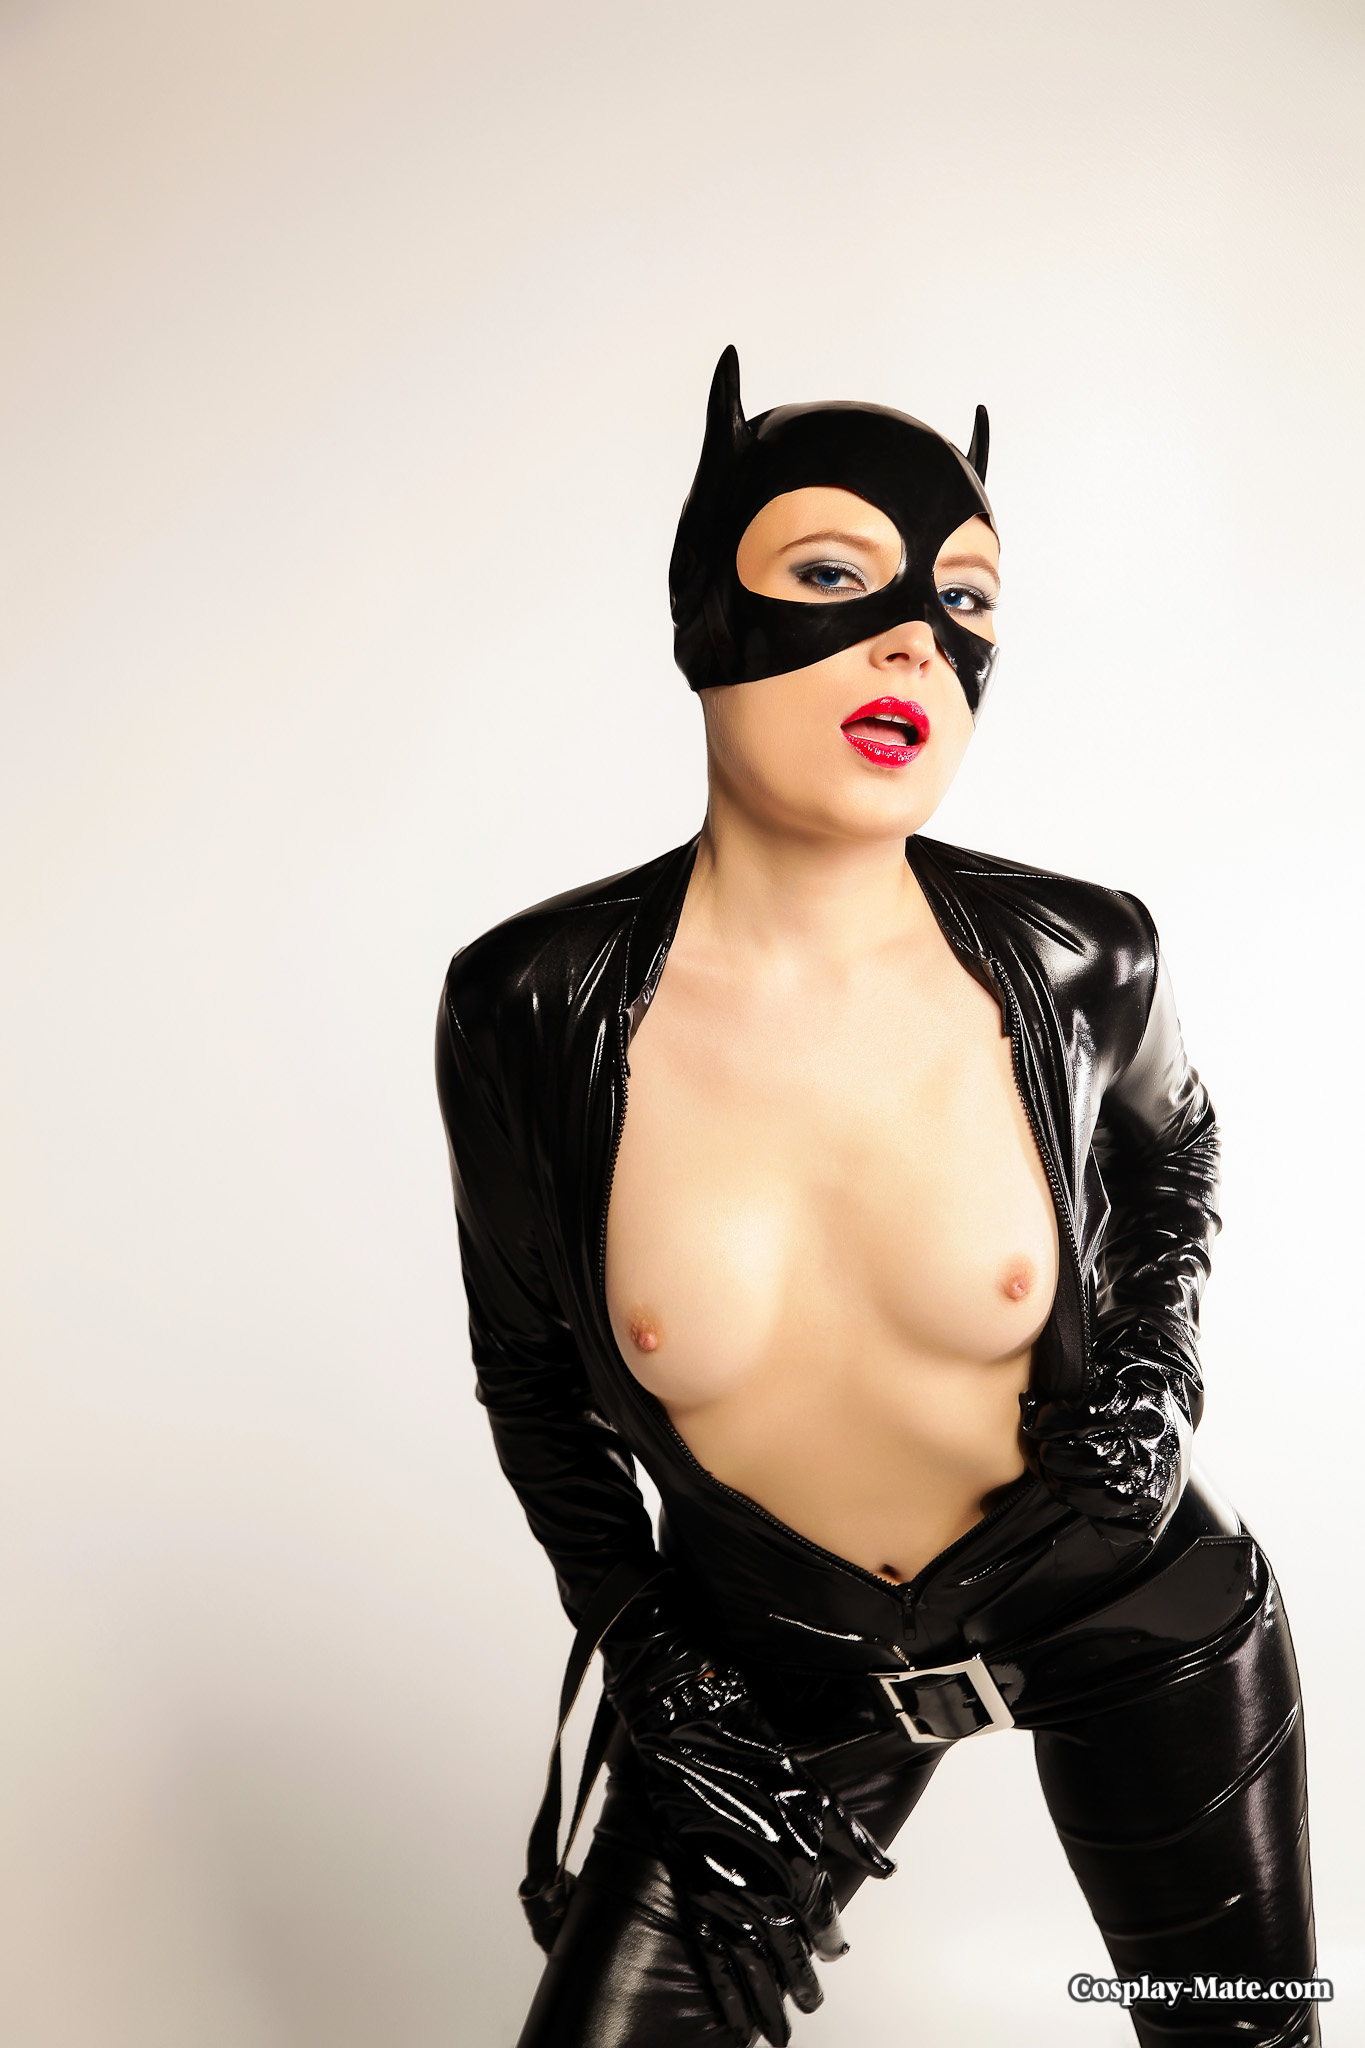 Sexy hot nude catwomen doing women sexy images